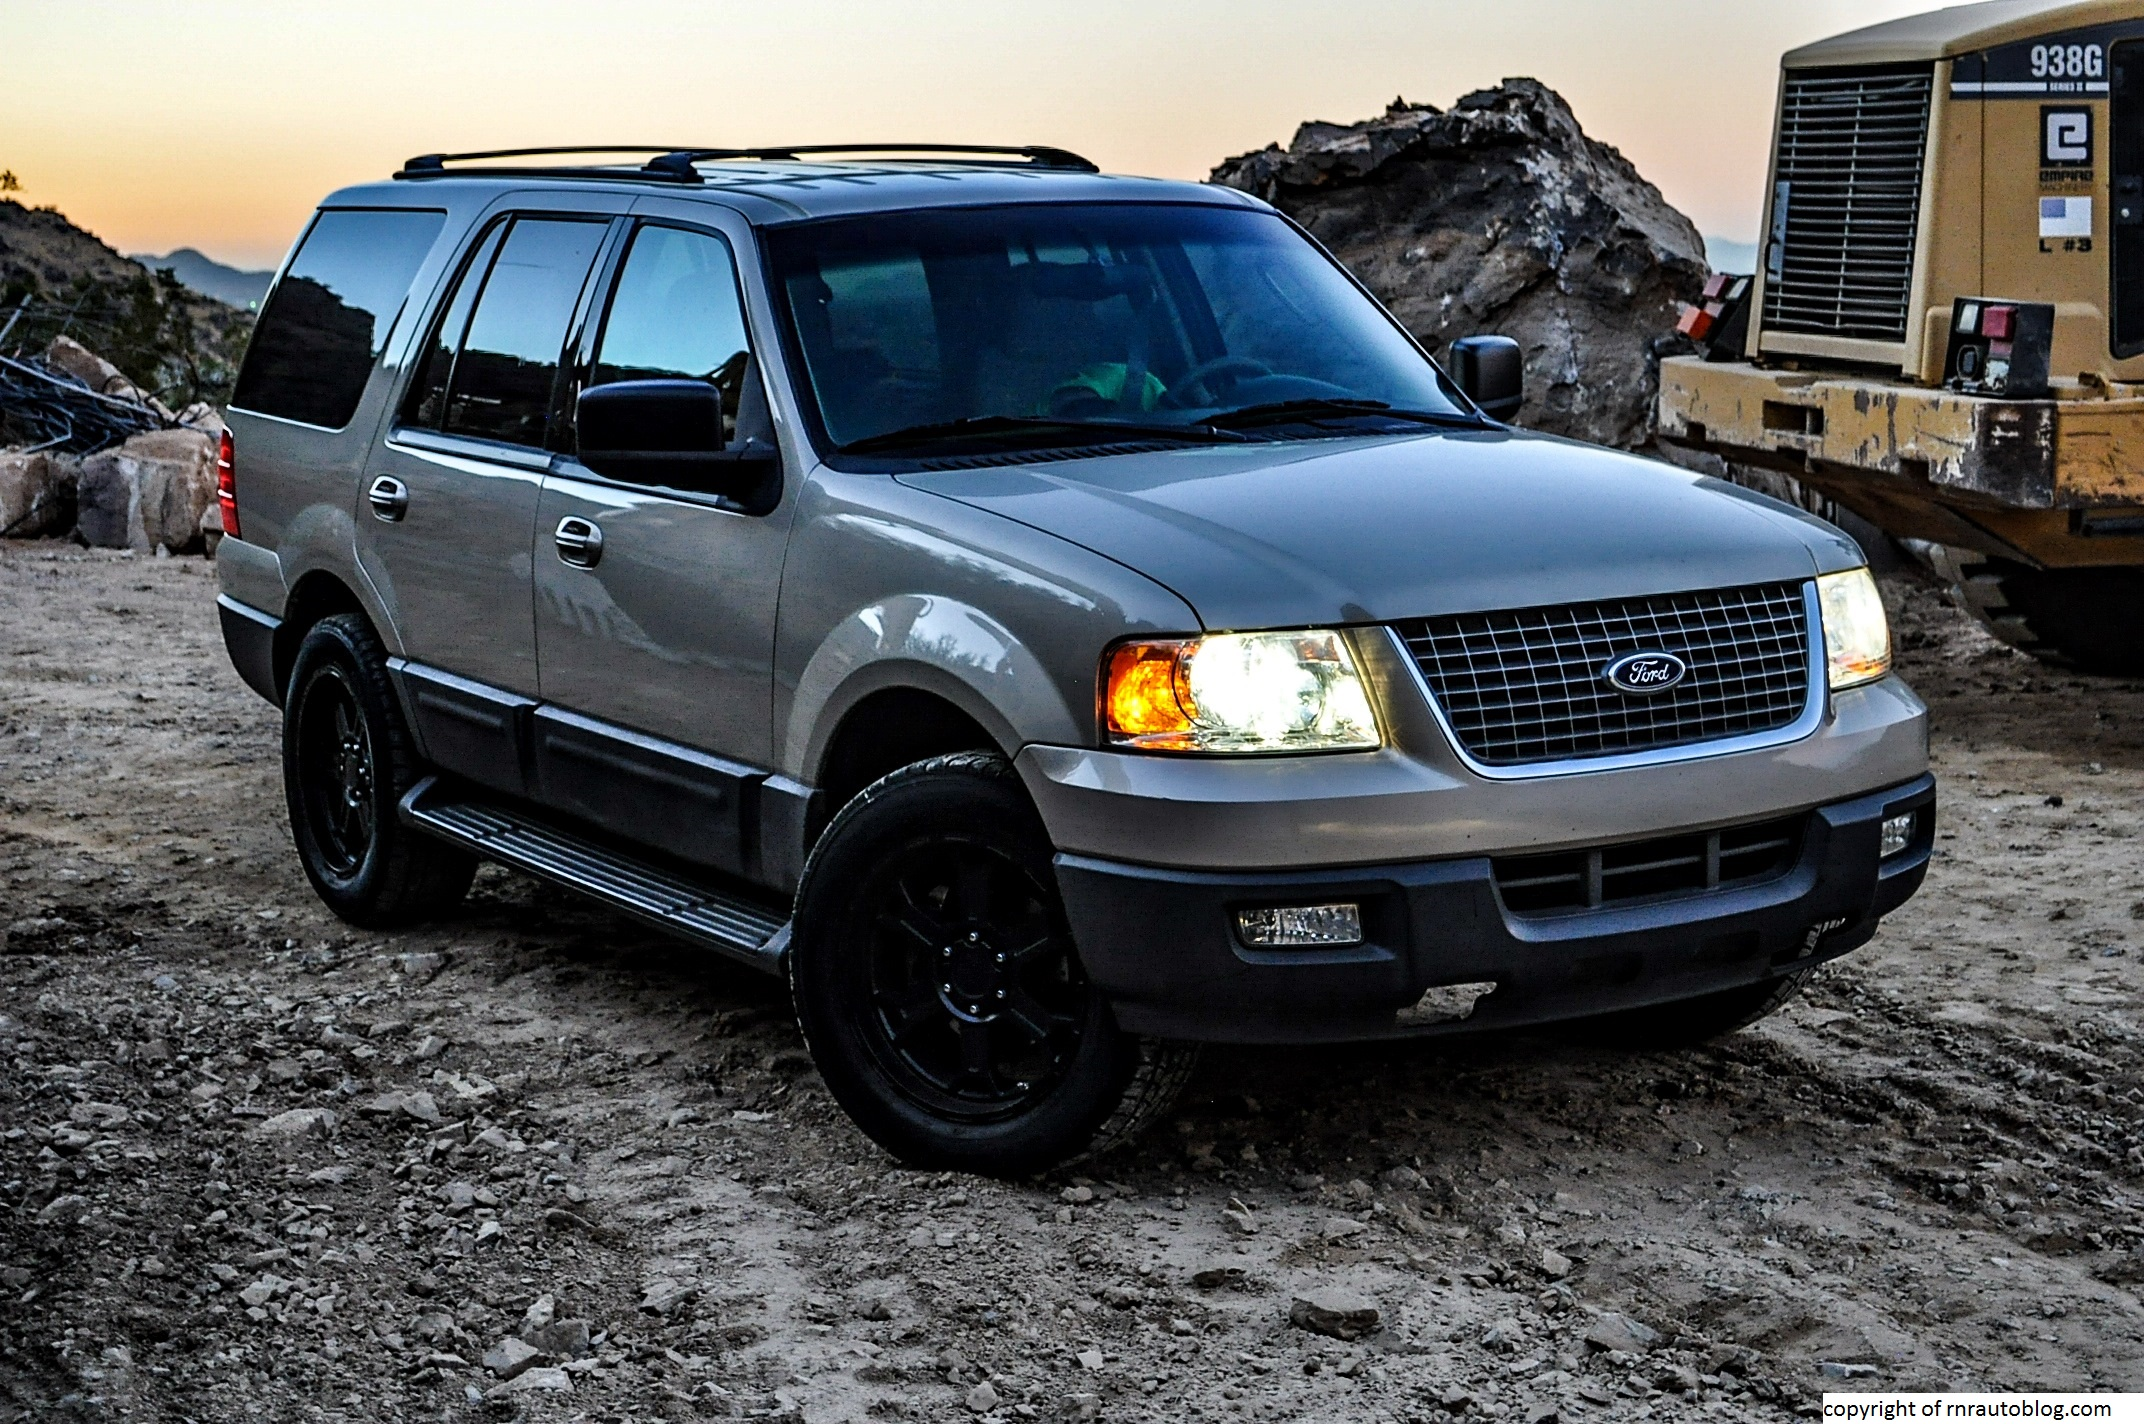 2004 Ford Expedition Xlt Review Rnr Automotive Blog